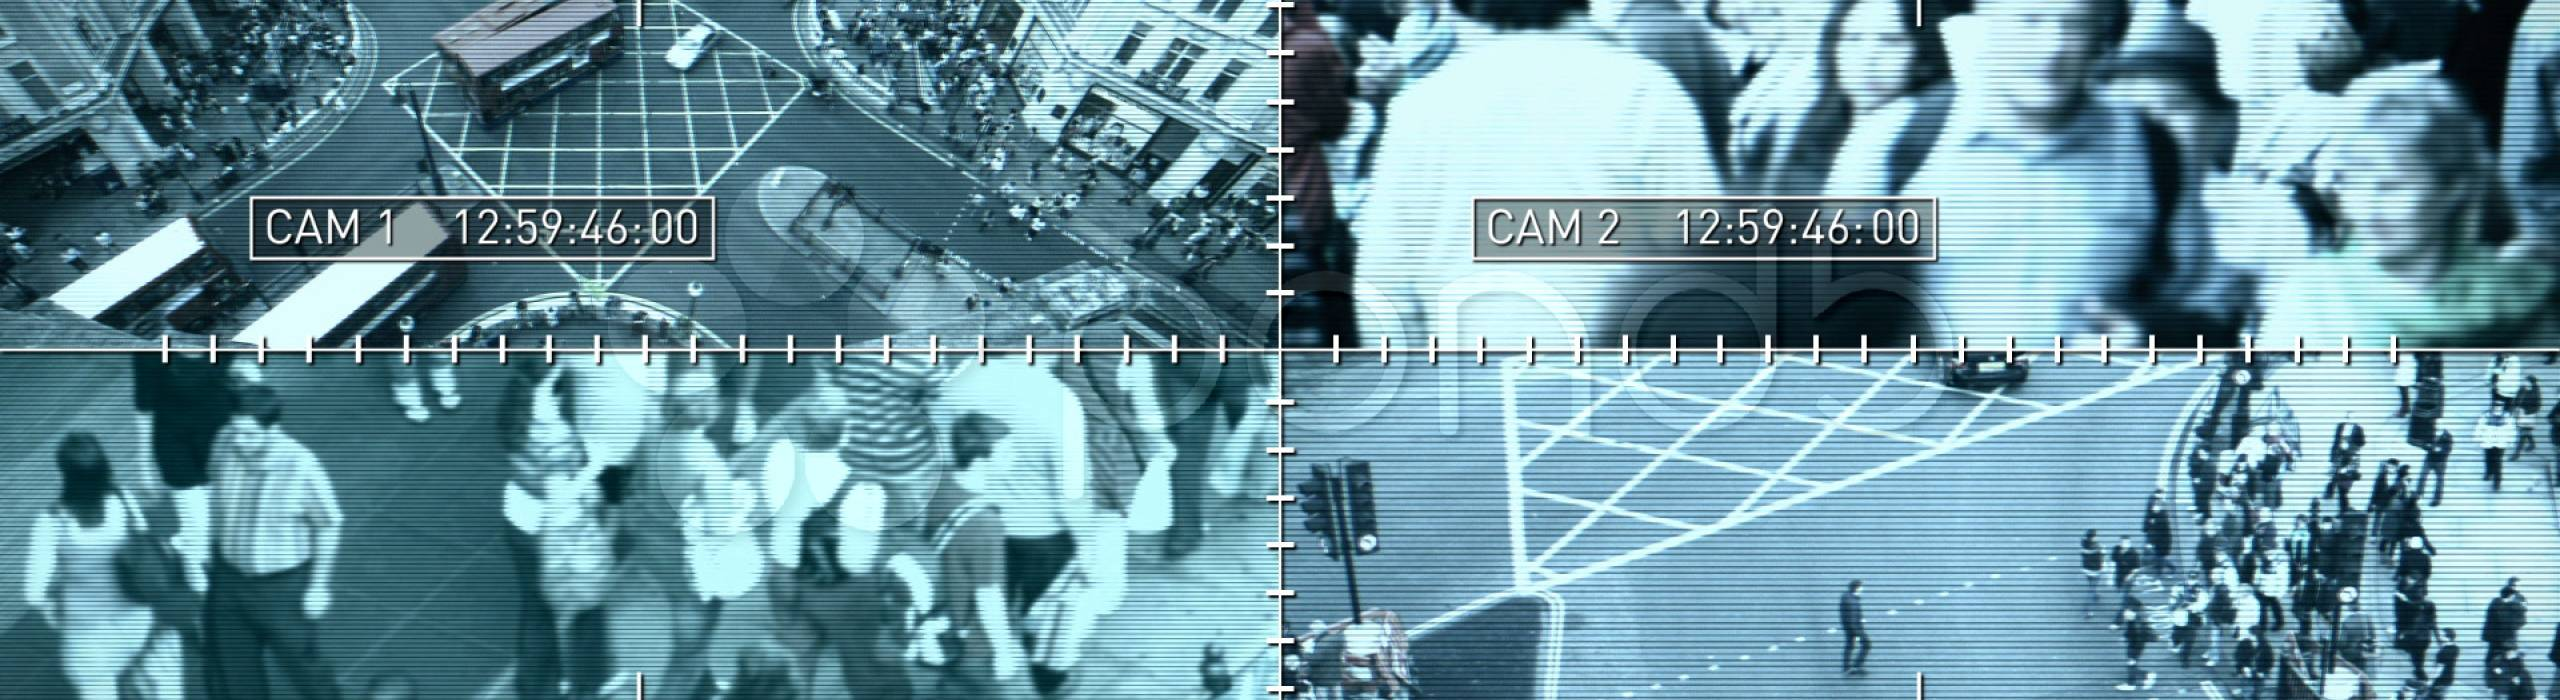 Stock photo of surveillance video screen